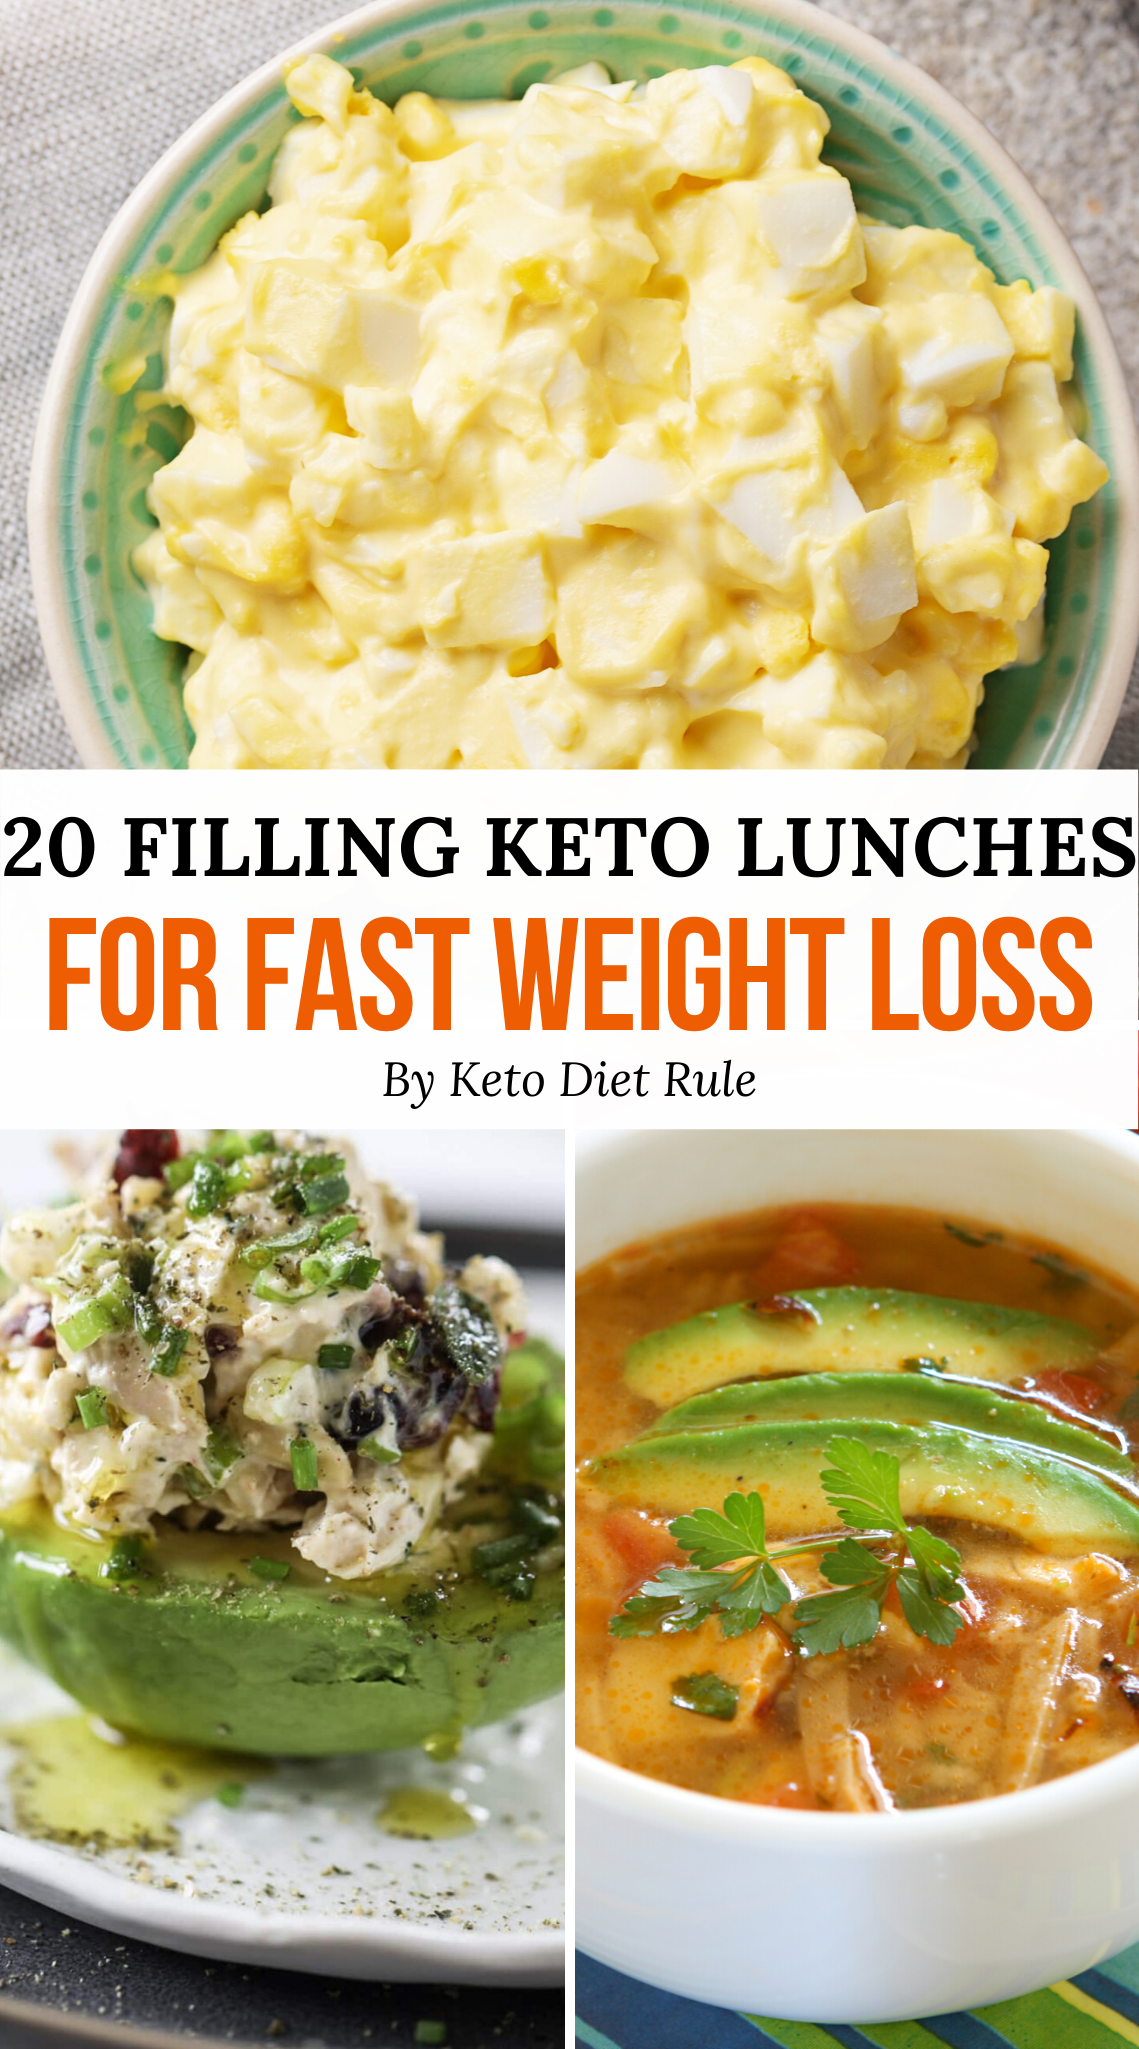 20 Filling Keto Lunch Recipes for Fast Weight Loss